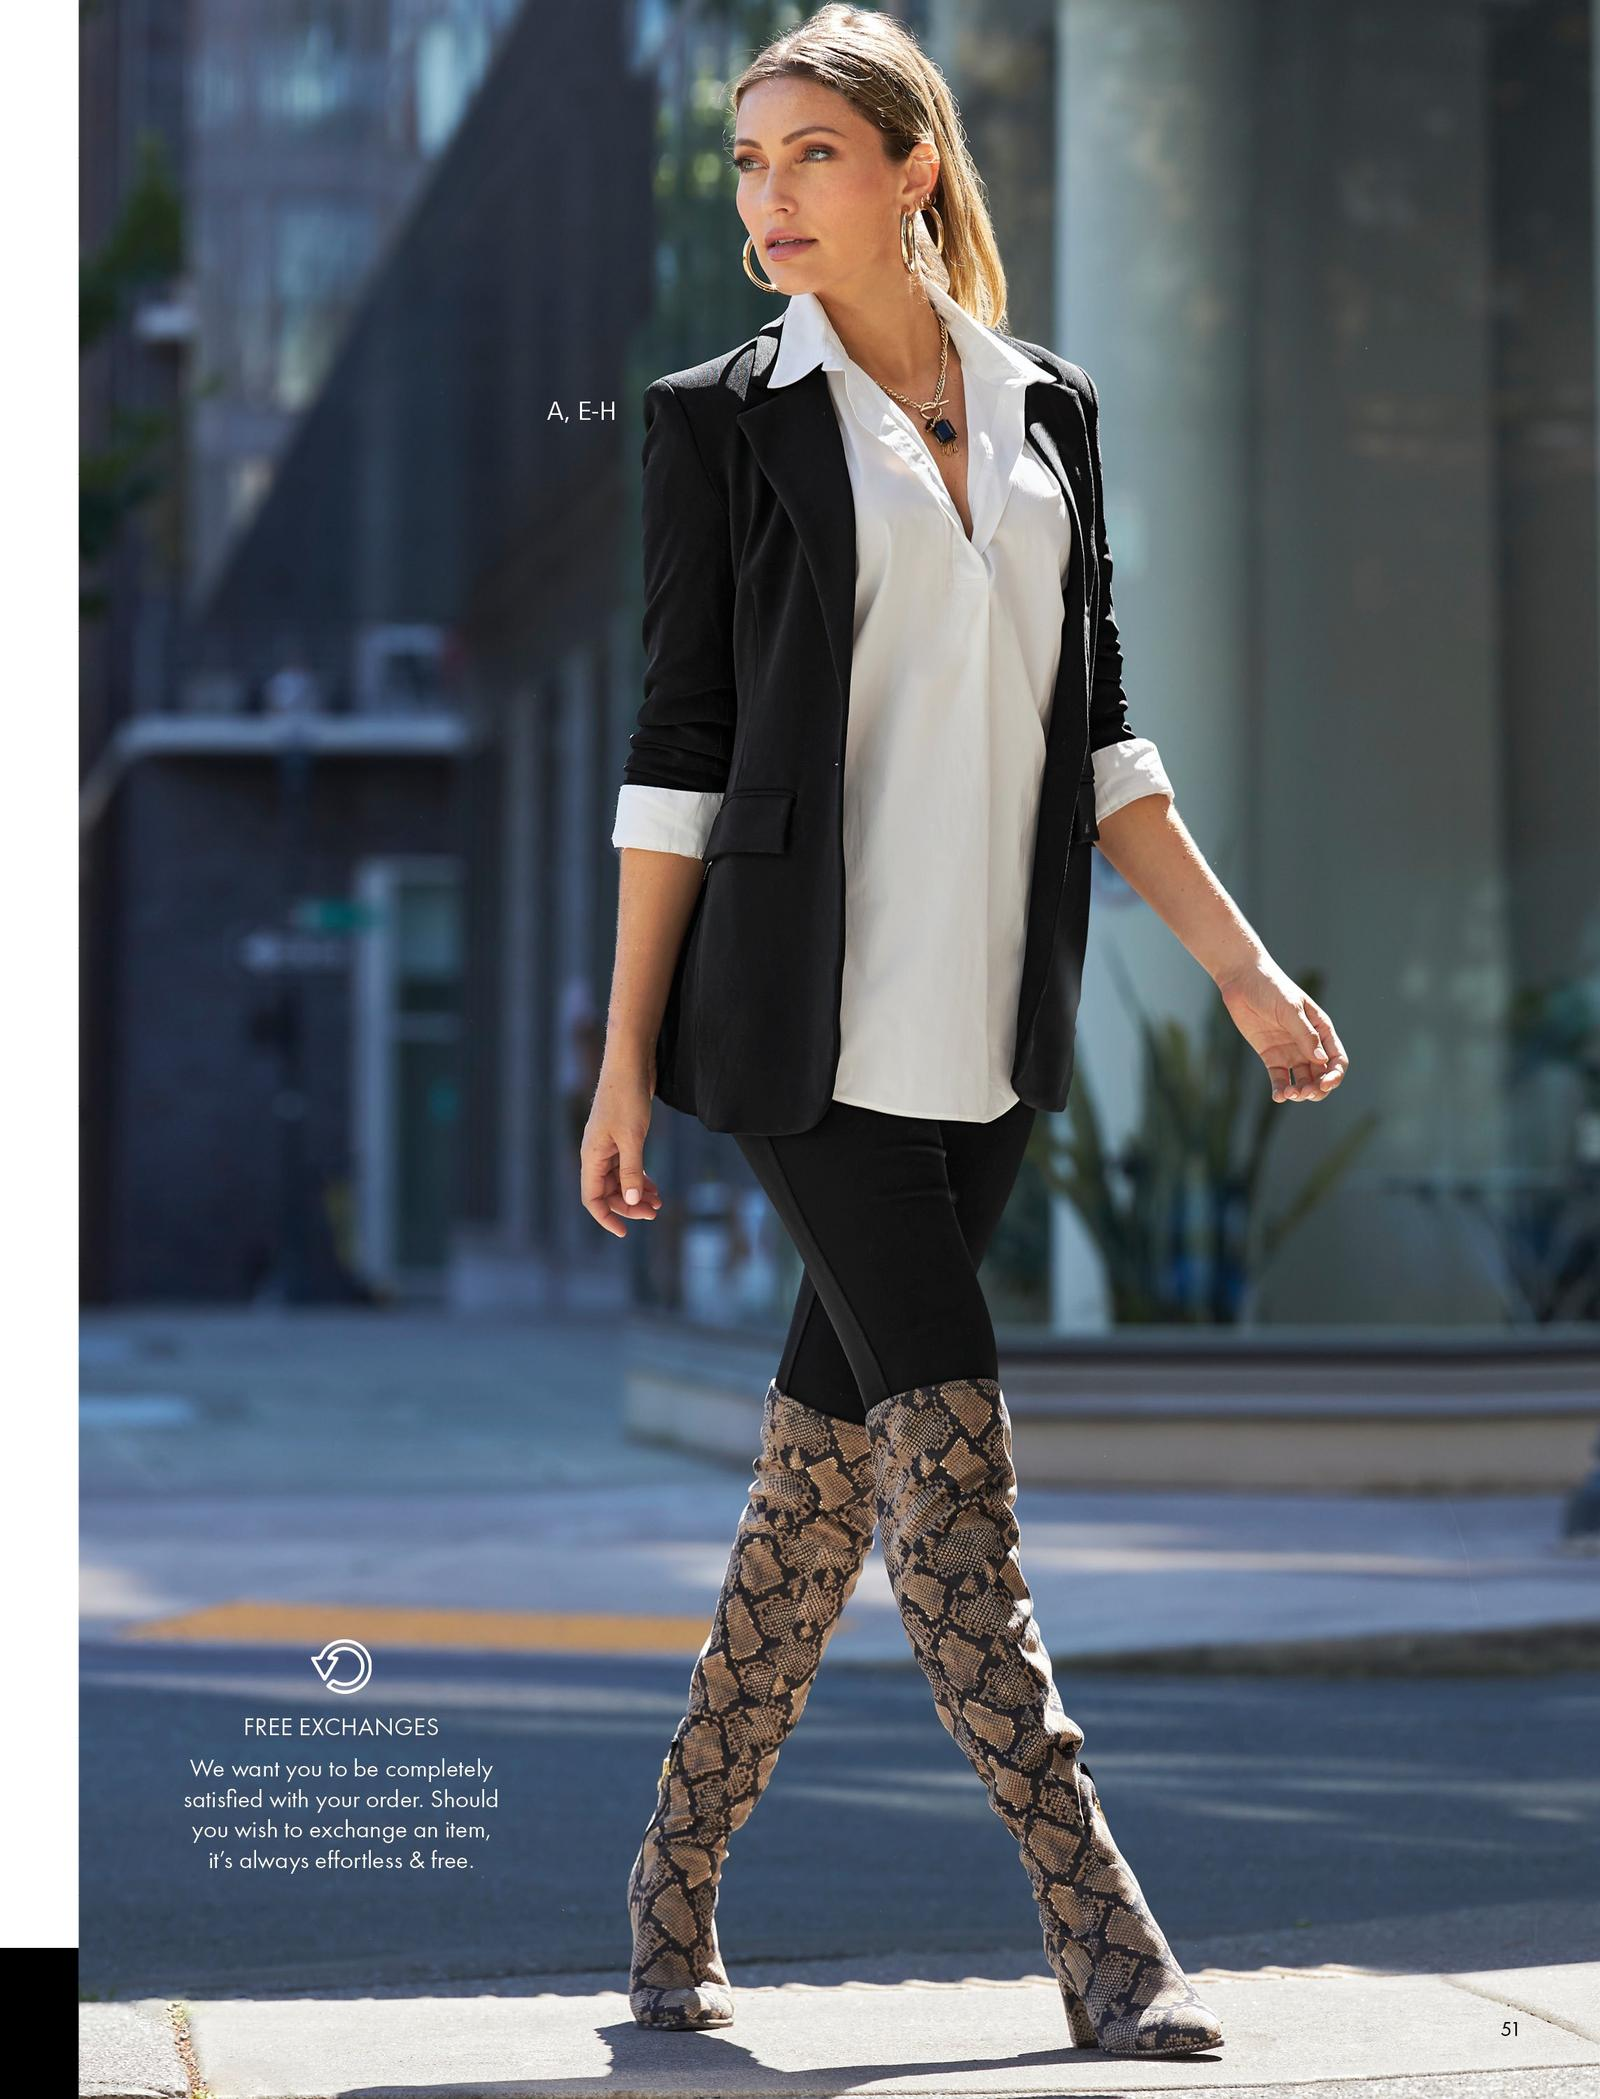 model wearing a black blazer, white tunic blouse, black leggings, gold hoop earrings, and python print over-the-knee boots.